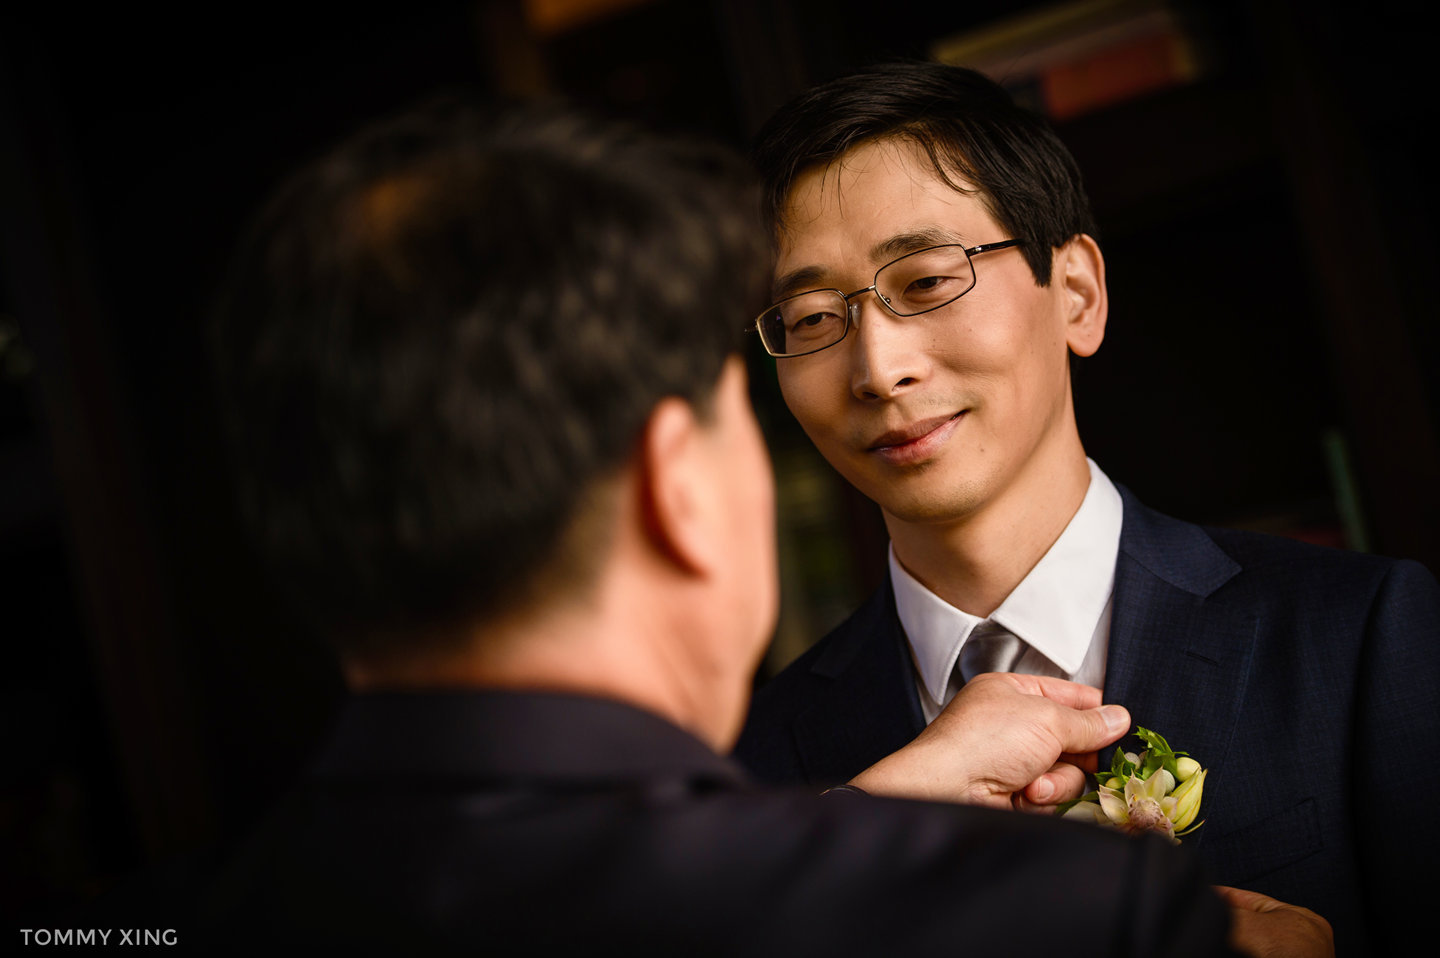 San Francisco Wedding Photography Valley Presbyterian Church WEDDING Tommy Xing Photography 洛杉矶旧金山婚礼婚纱照摄影师012.jpg